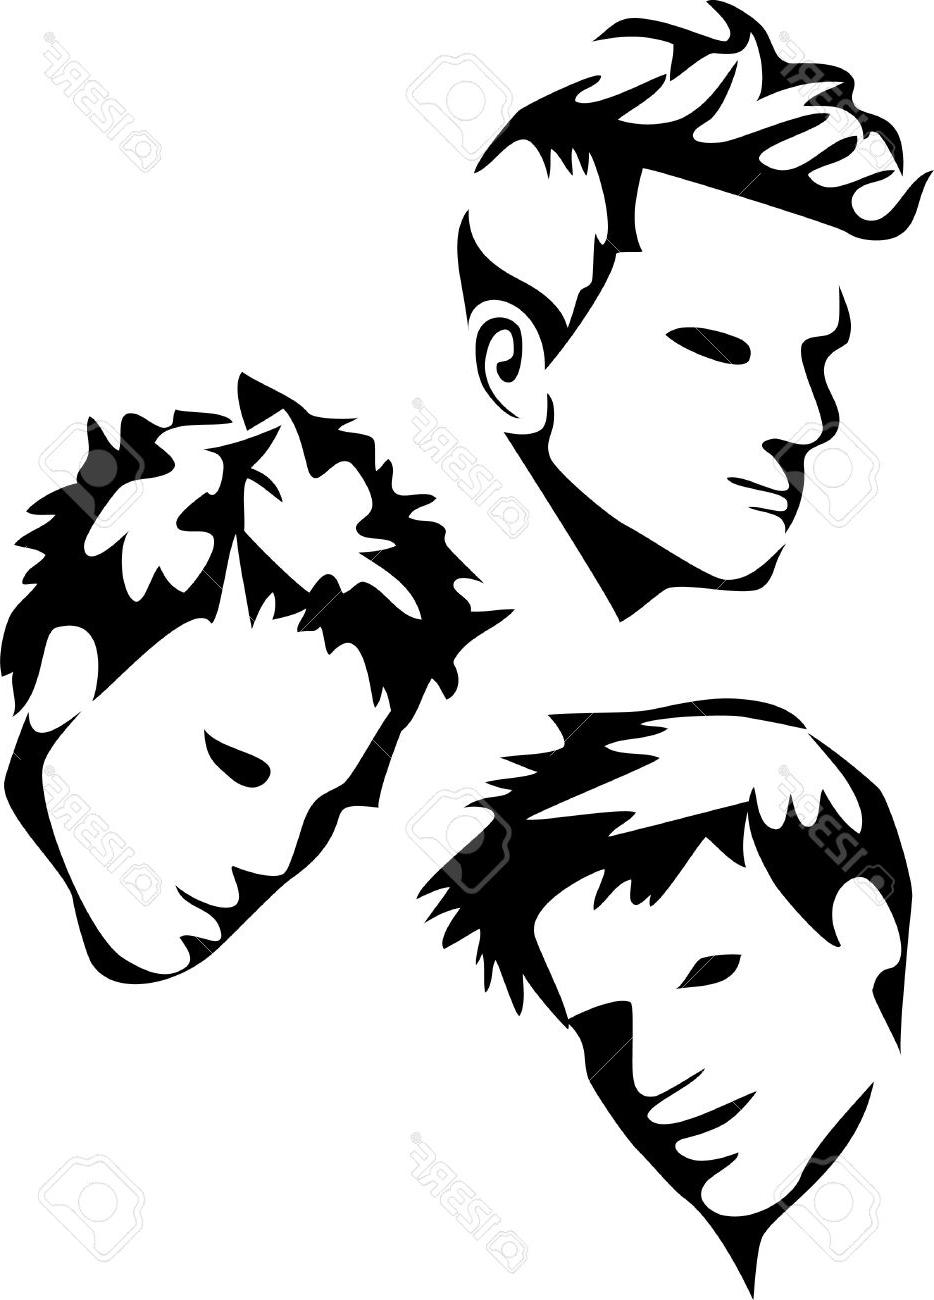 Clipart hairdresser child haircut.